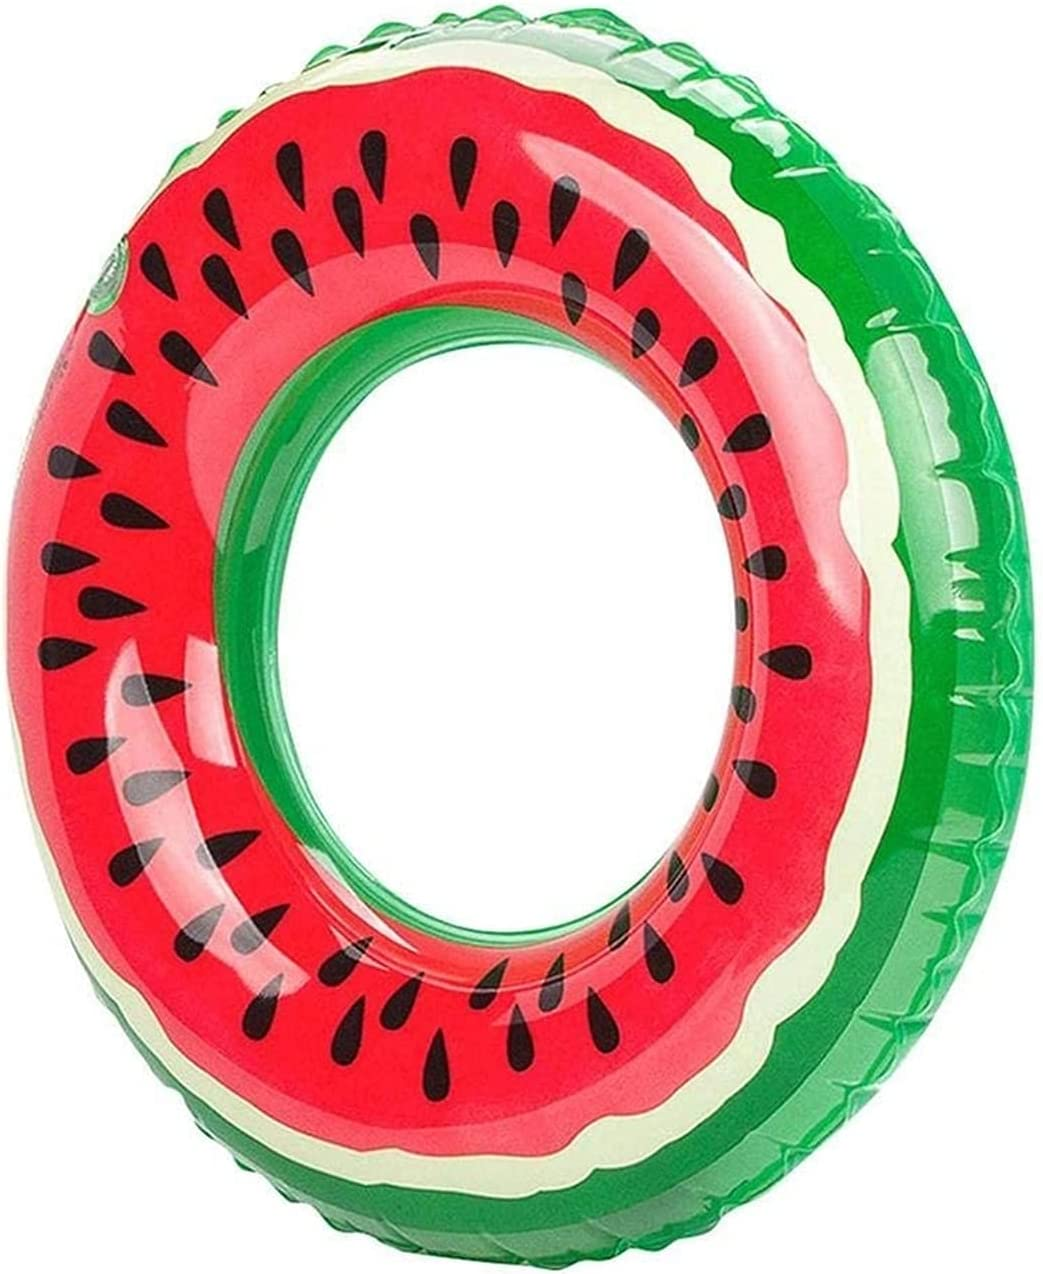 GDYJP Swimming Ring Outdoor Watermelon El Paso Mall Inflatable Pool Ci Bargain Float